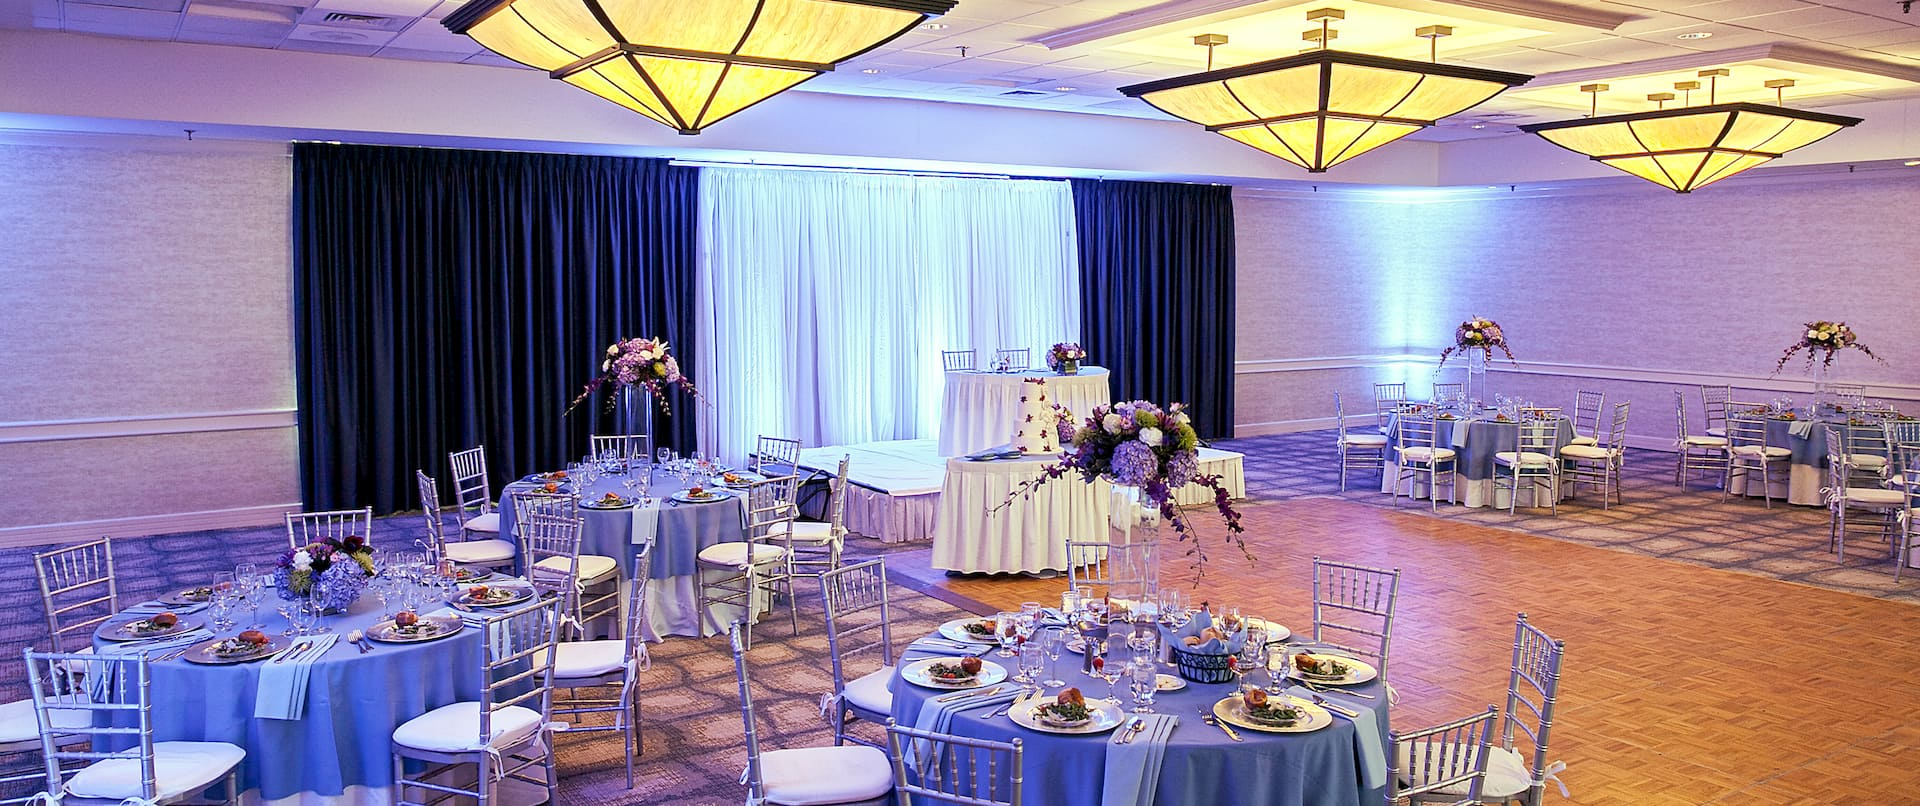 Grand Ballroom Set Up for Wedding Reception With Dramatic Purple Lighting, Head Table on a Stage, Cake Table By Dance Floor, Plates of Food, and Purple Flowers on Round Tables With Blue Linens and Chairs